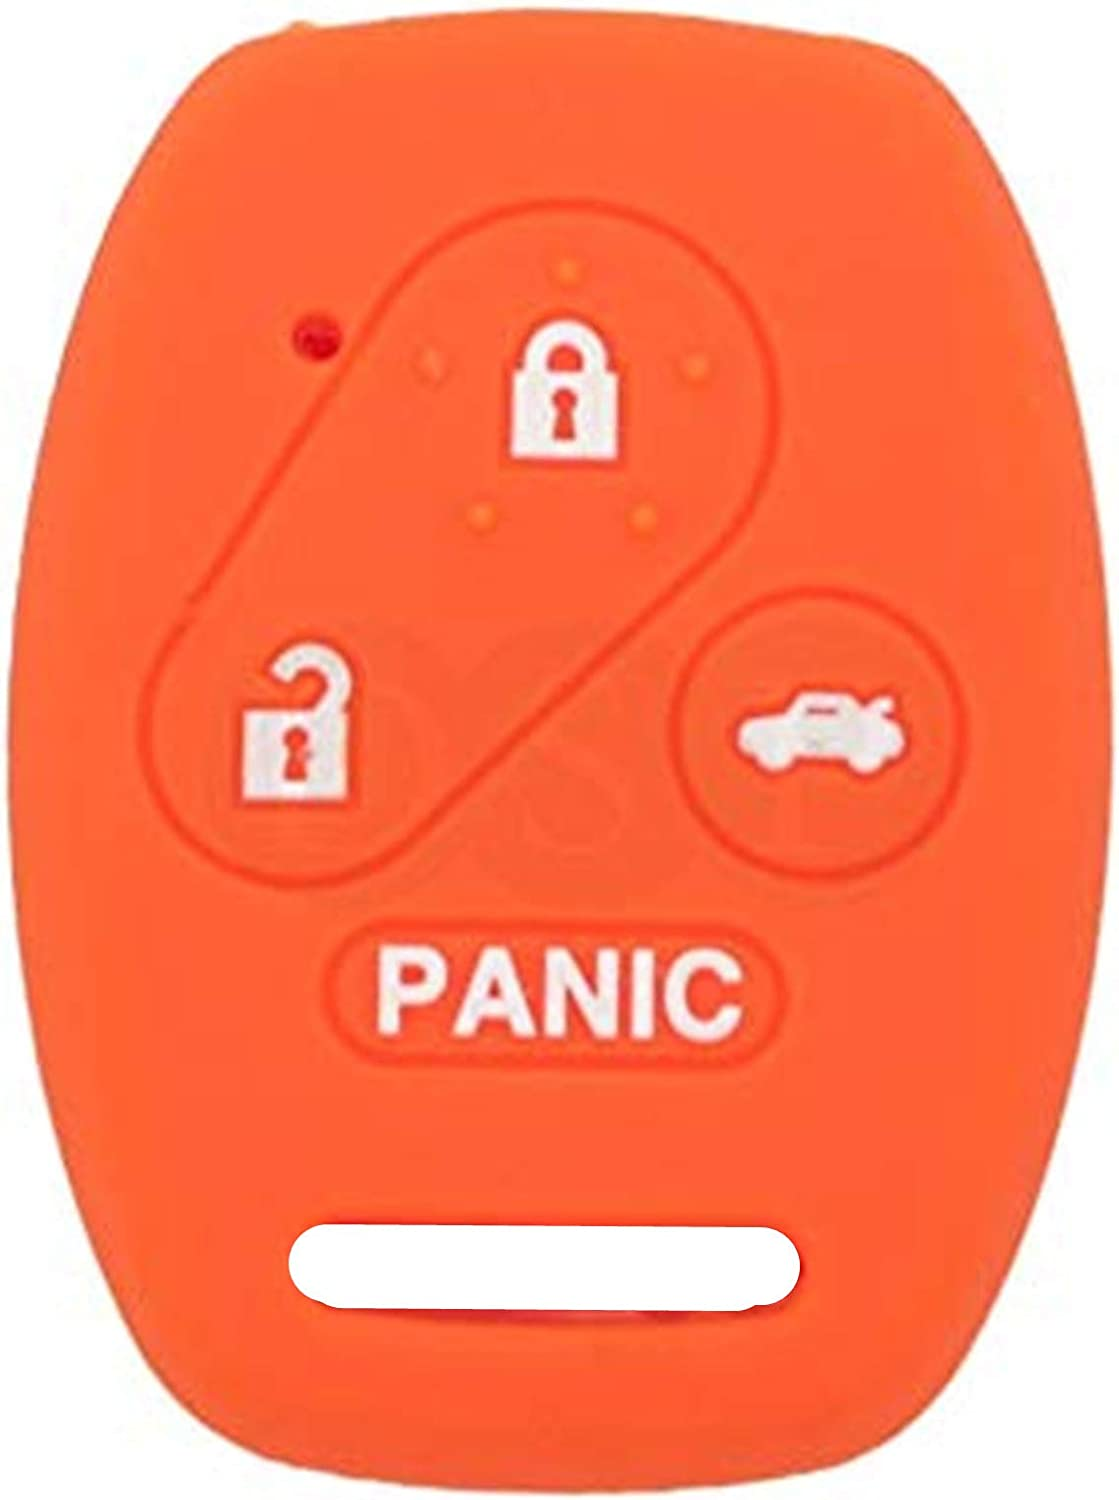 Orange KAWIHEN Silicone Smart Remote Keyless Entry Key Fob Cover Holder Protector For Honda Accord Accord Crosstour CR-V Civic Element Pilot OUCG8D-380H-A N5F-S0084A N5F-A05TAA